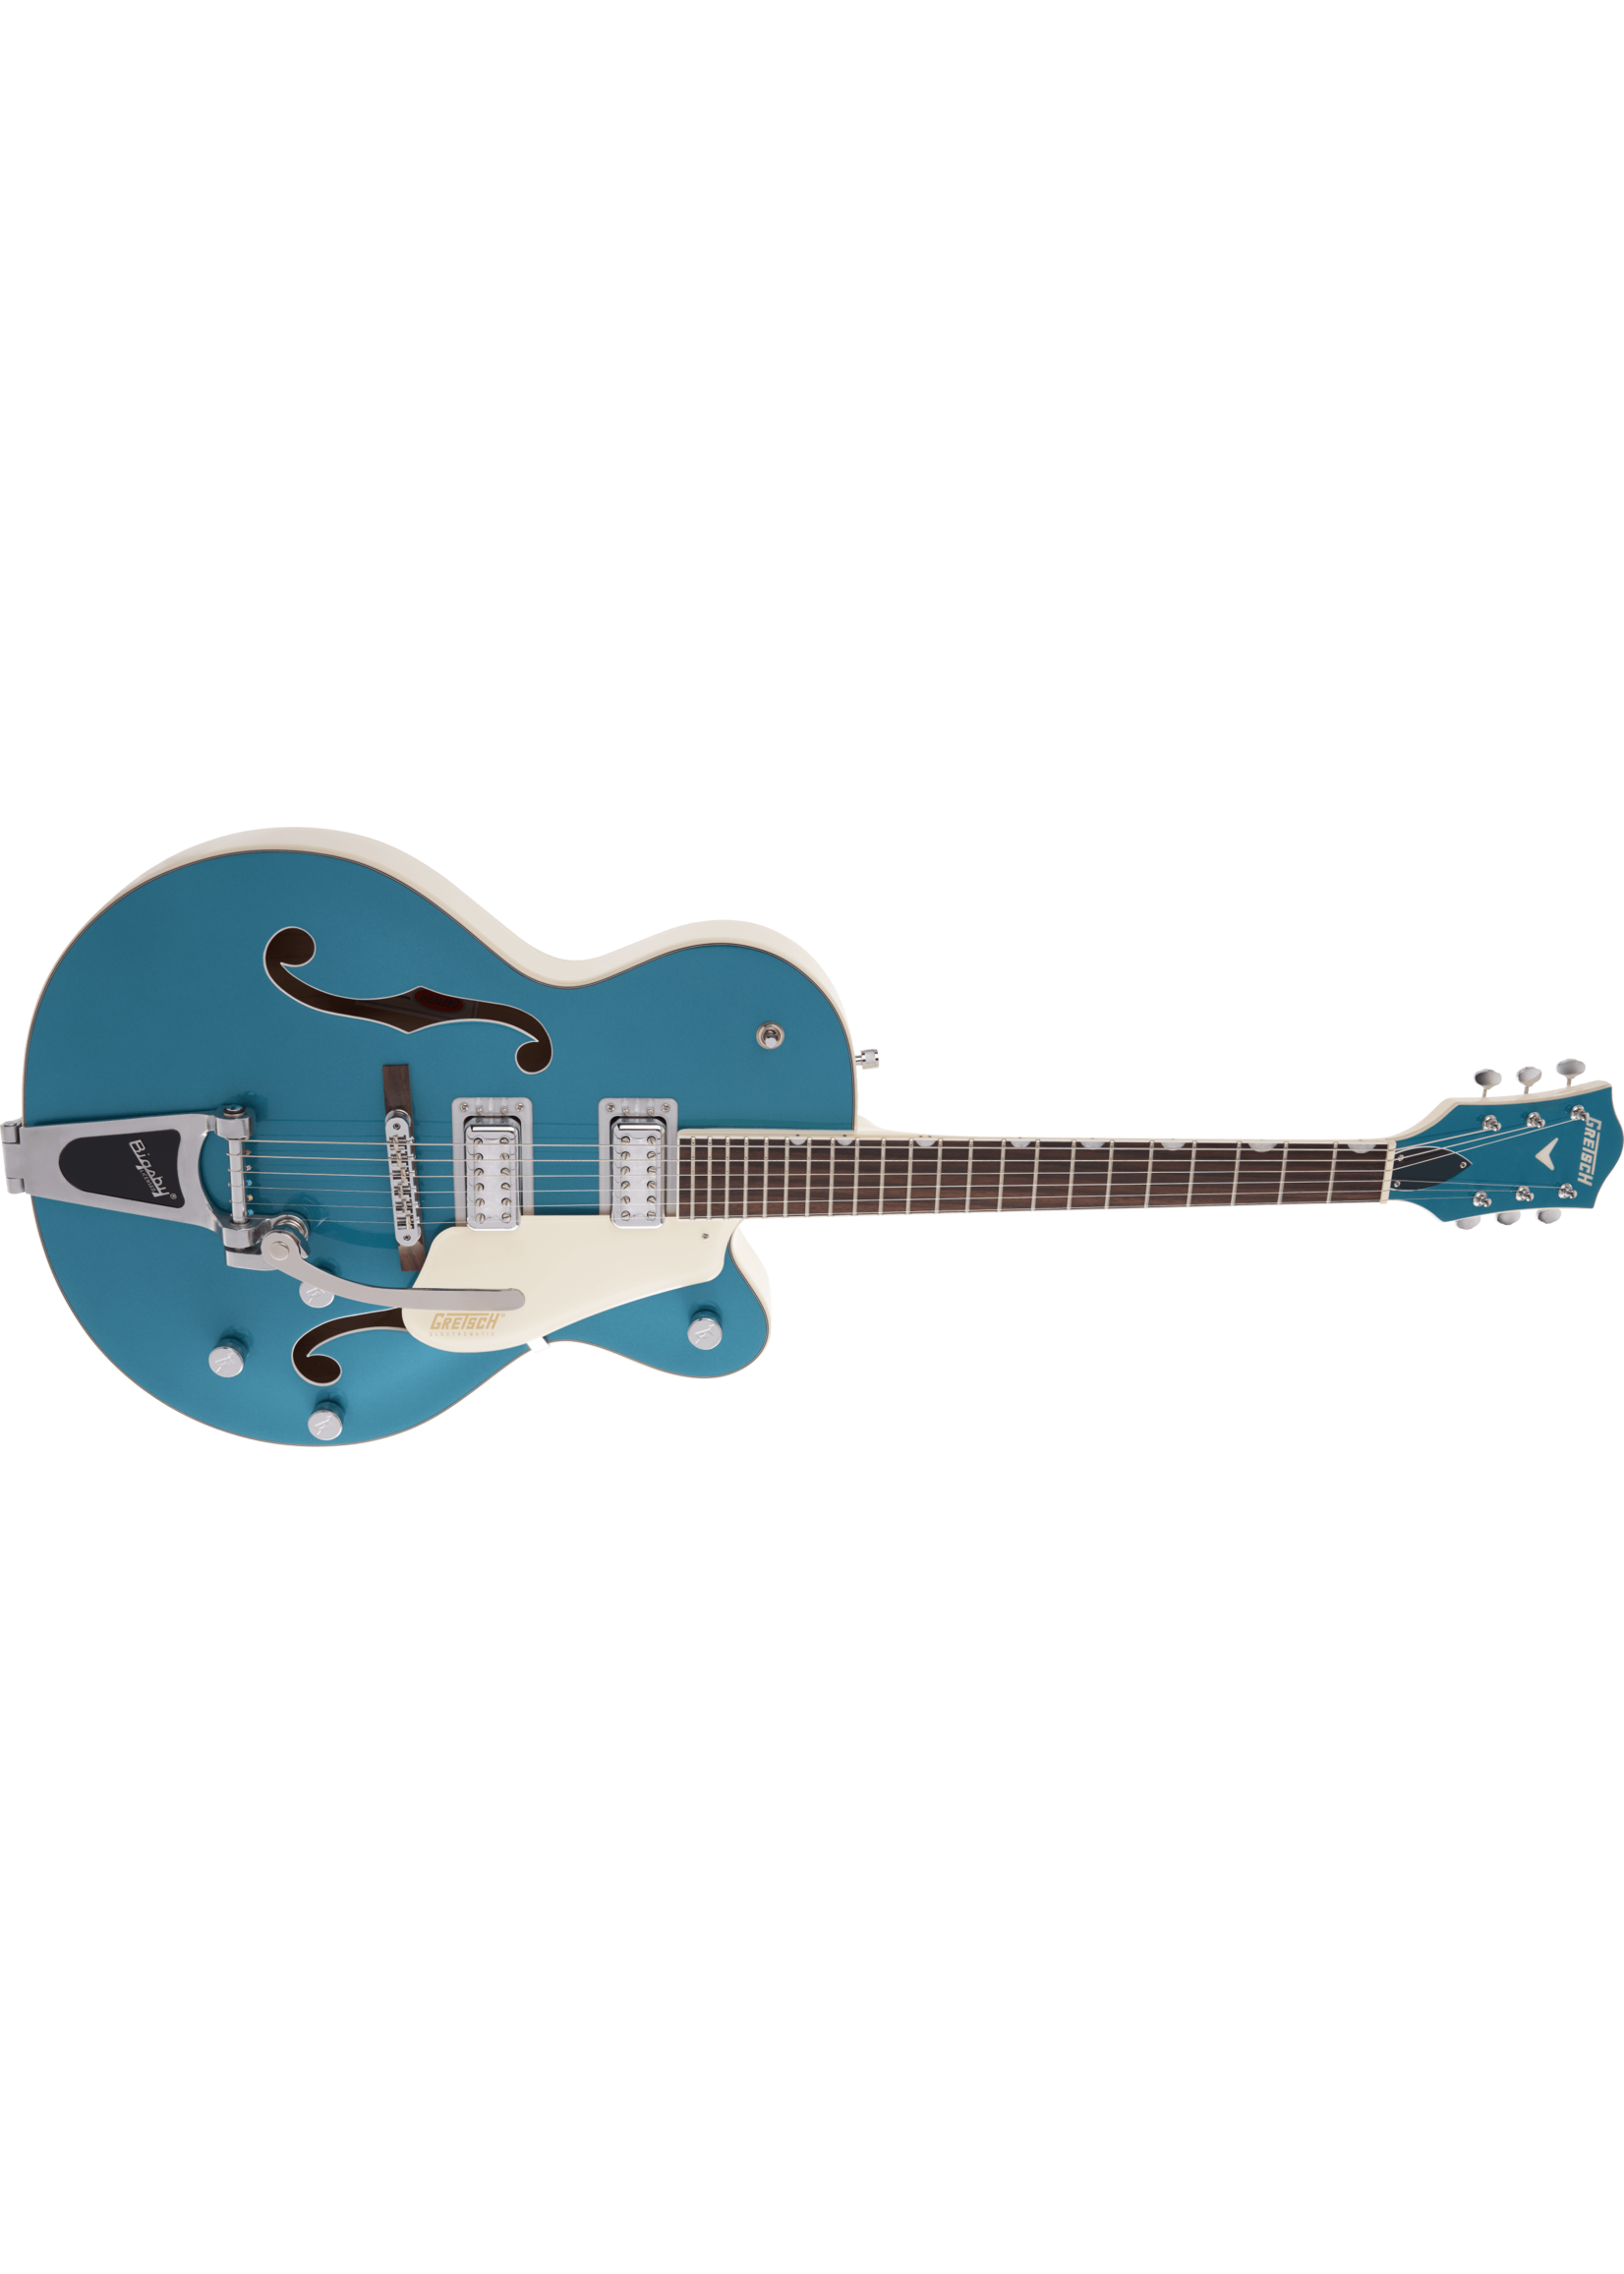 Gretsch Gretsch G5410T Electromatic Tri-Five Two Tone Ocean Turquoise/Vintage White